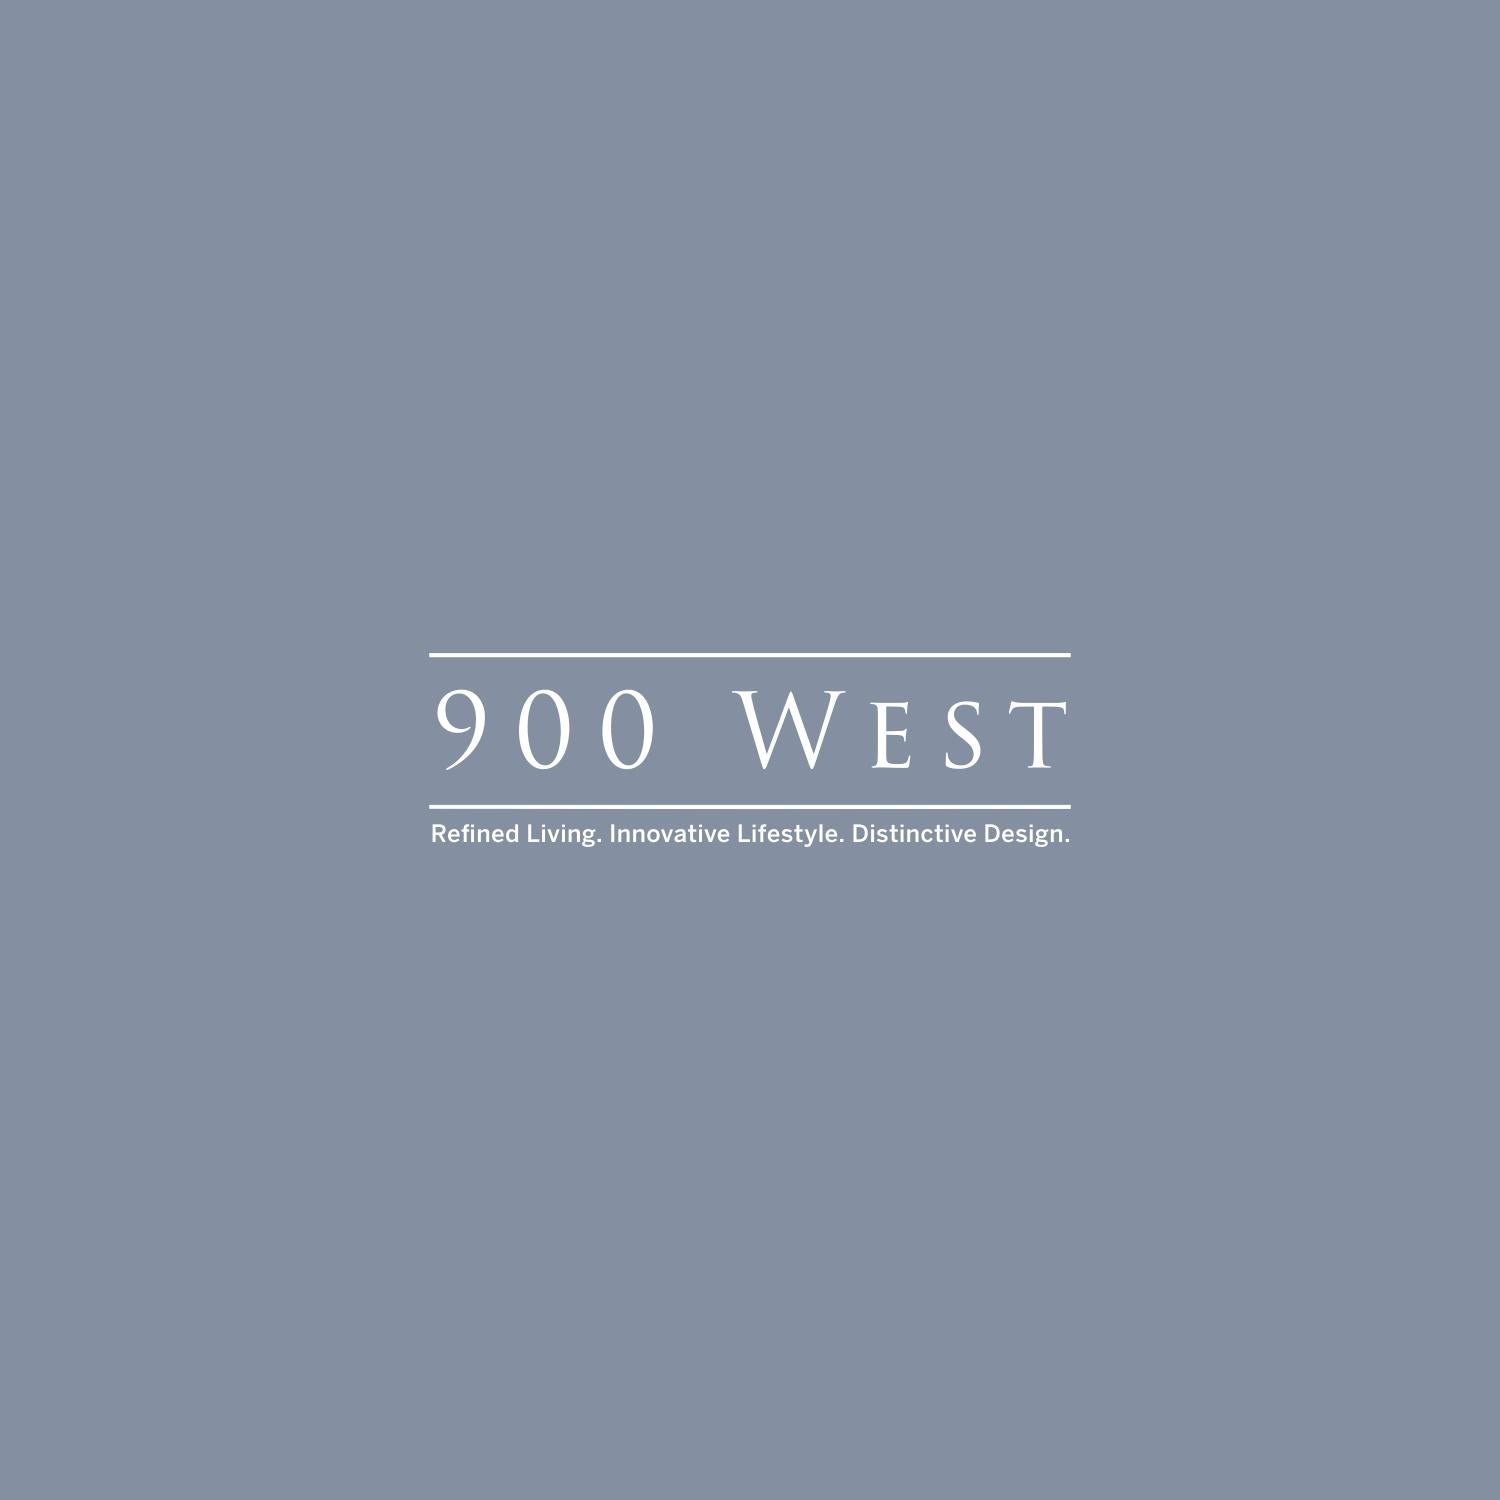 900 West by Jameson Sotheby's International Realty - issuu